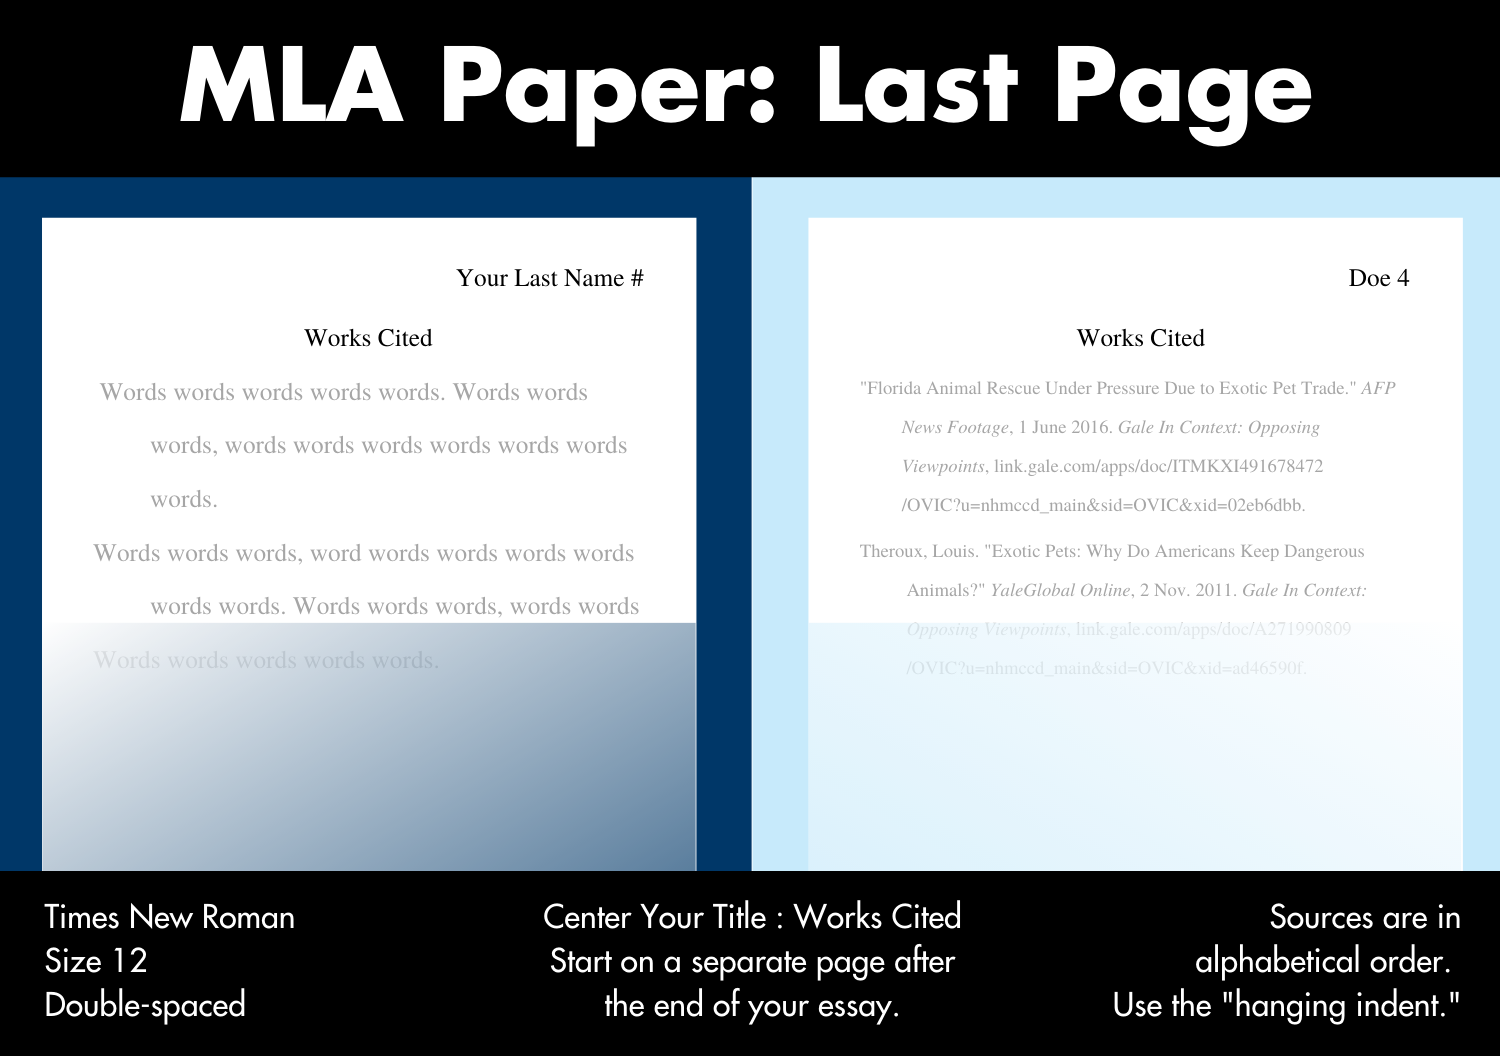 MLA last page set-up and model: start on a new page at the end of your paper. Title this page Works Cited. List sources in alpabetical order. Use the hanging indent.